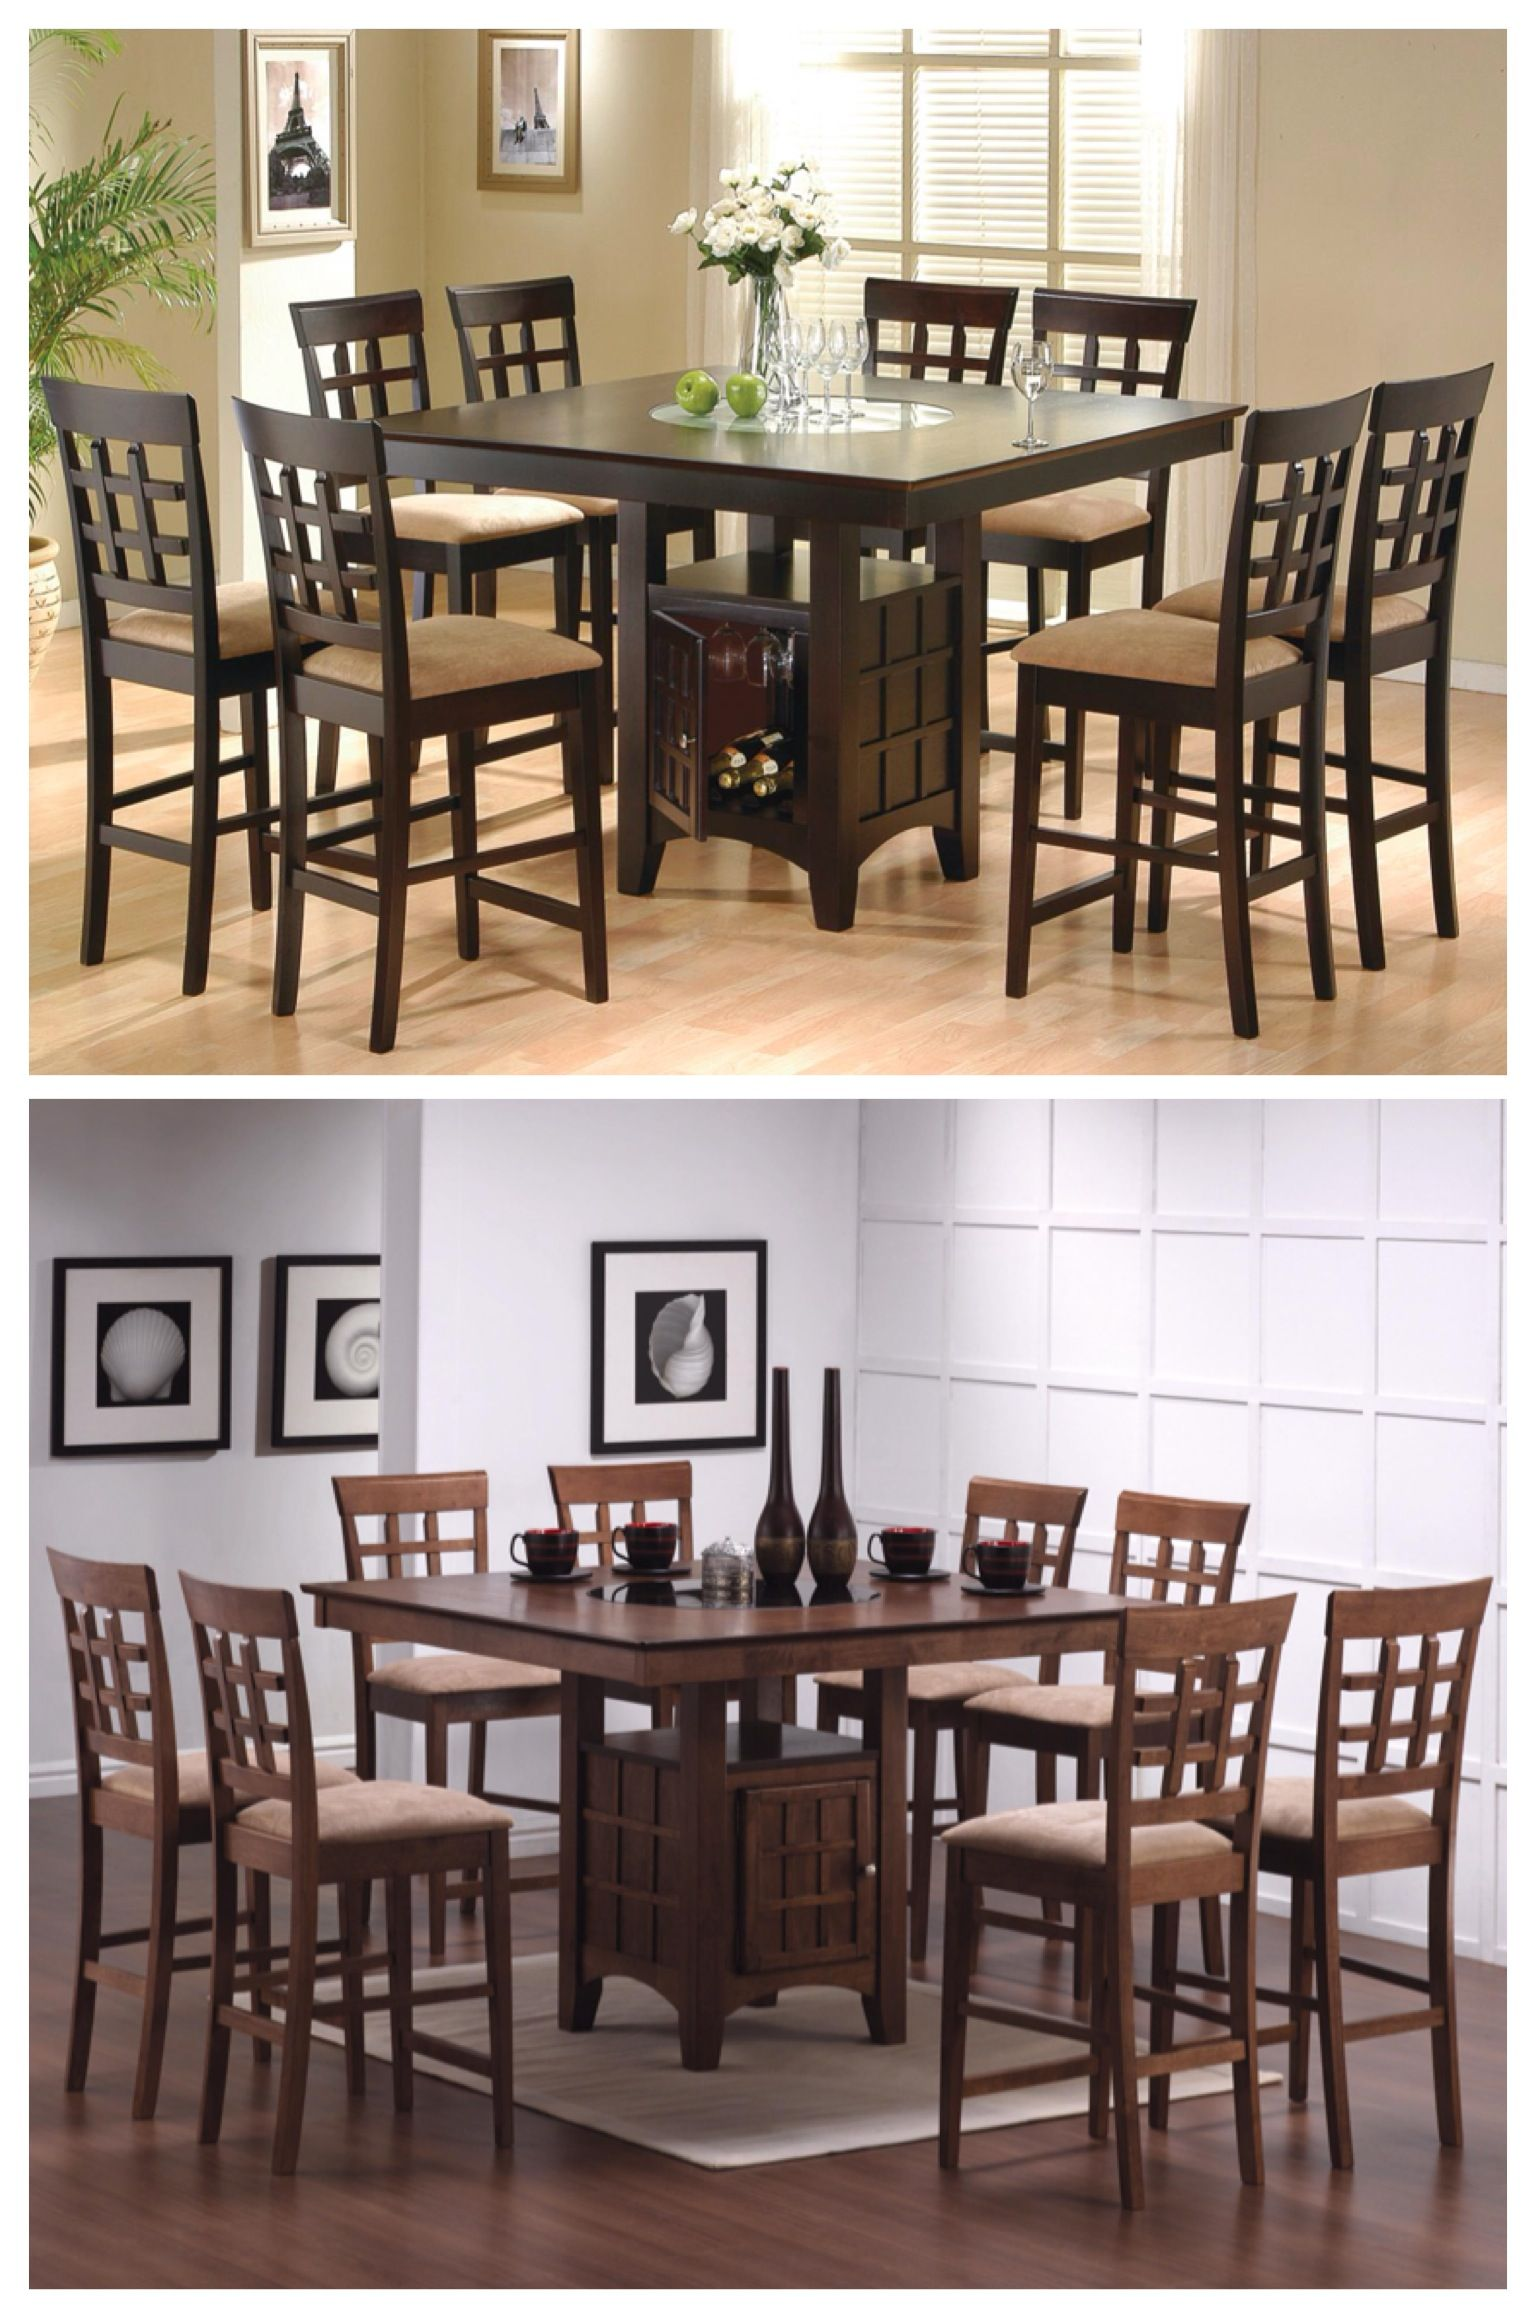 Sleek Counter Height Dining Table And Chair Set Will Be The